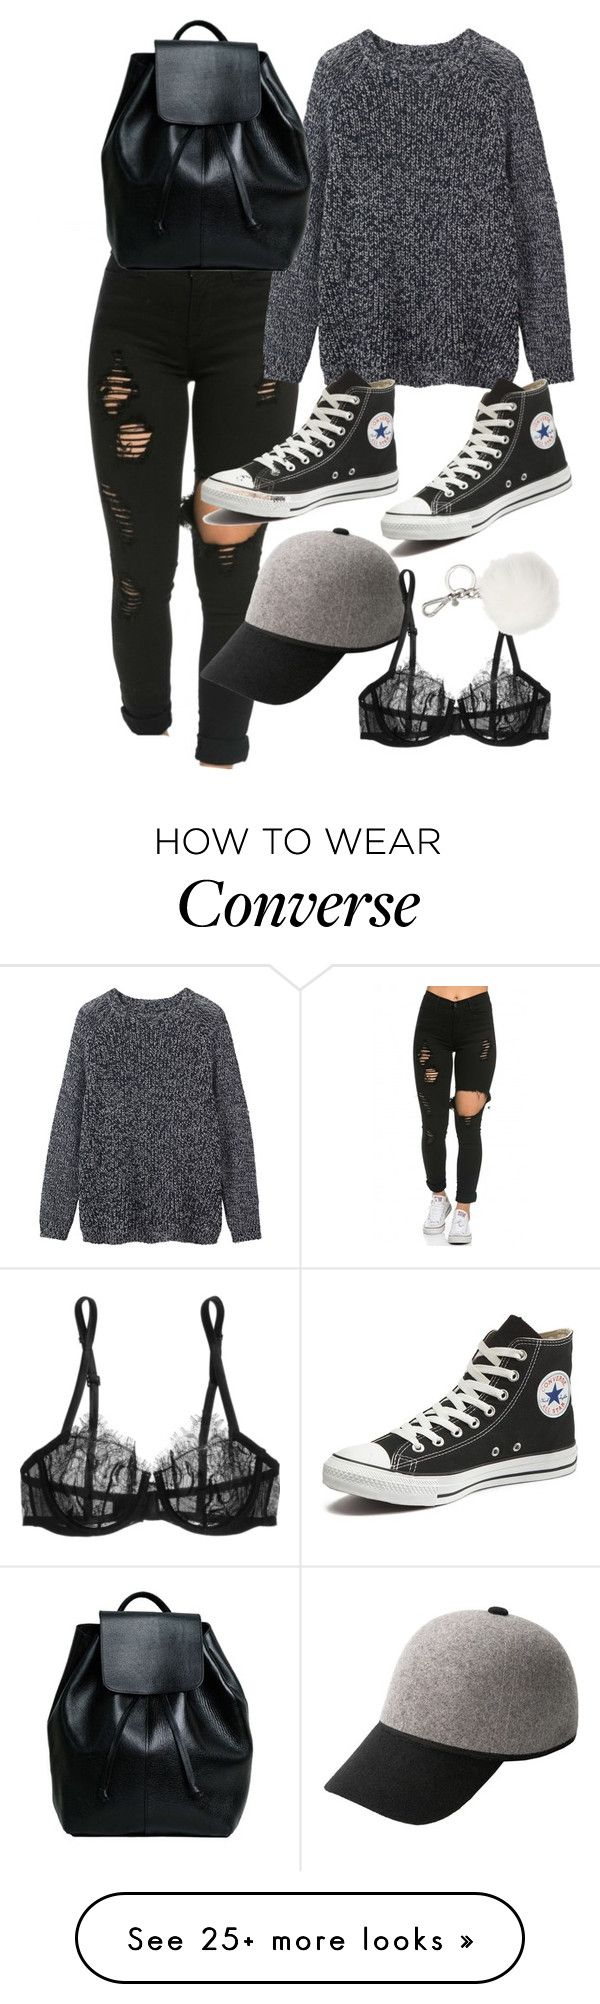 Untitled #9061 by katgorostiza on Polyvore featuring Toast, Converse, MANGO, La Perla, Michael Kors, women's clothing, women's fashion, women, female and woman